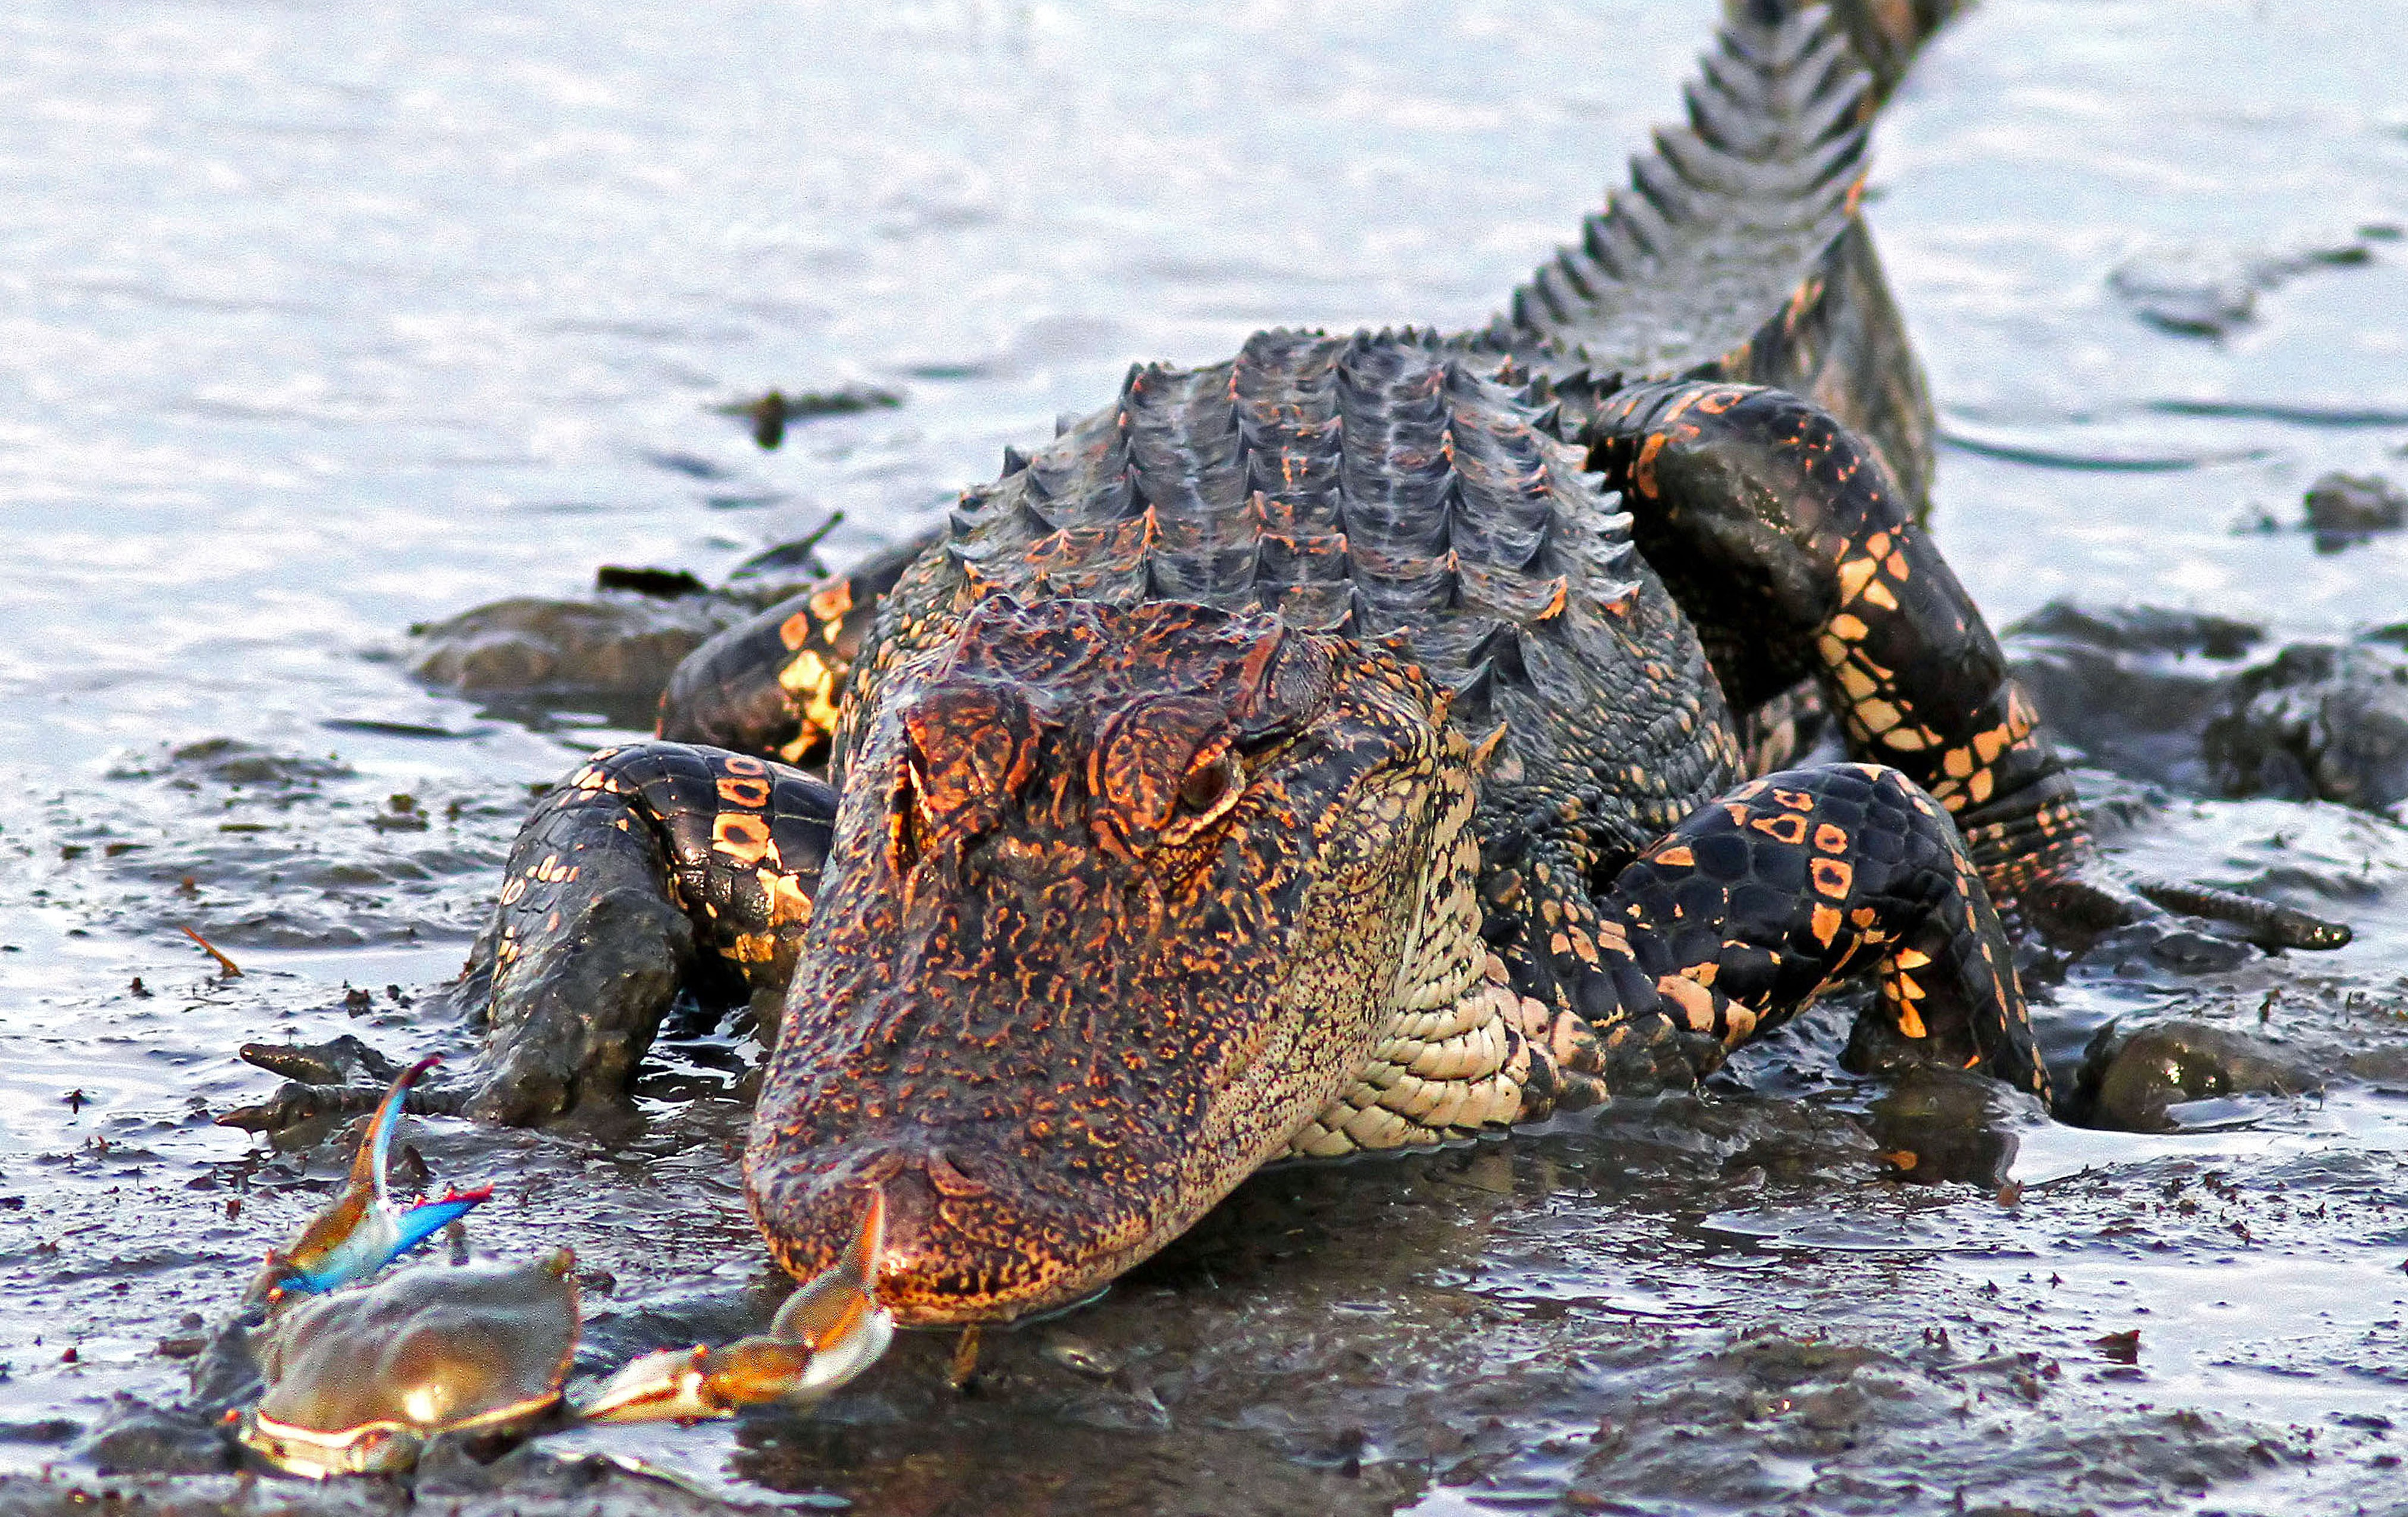 Crab And Alligator Face Off In The Ultimate David And